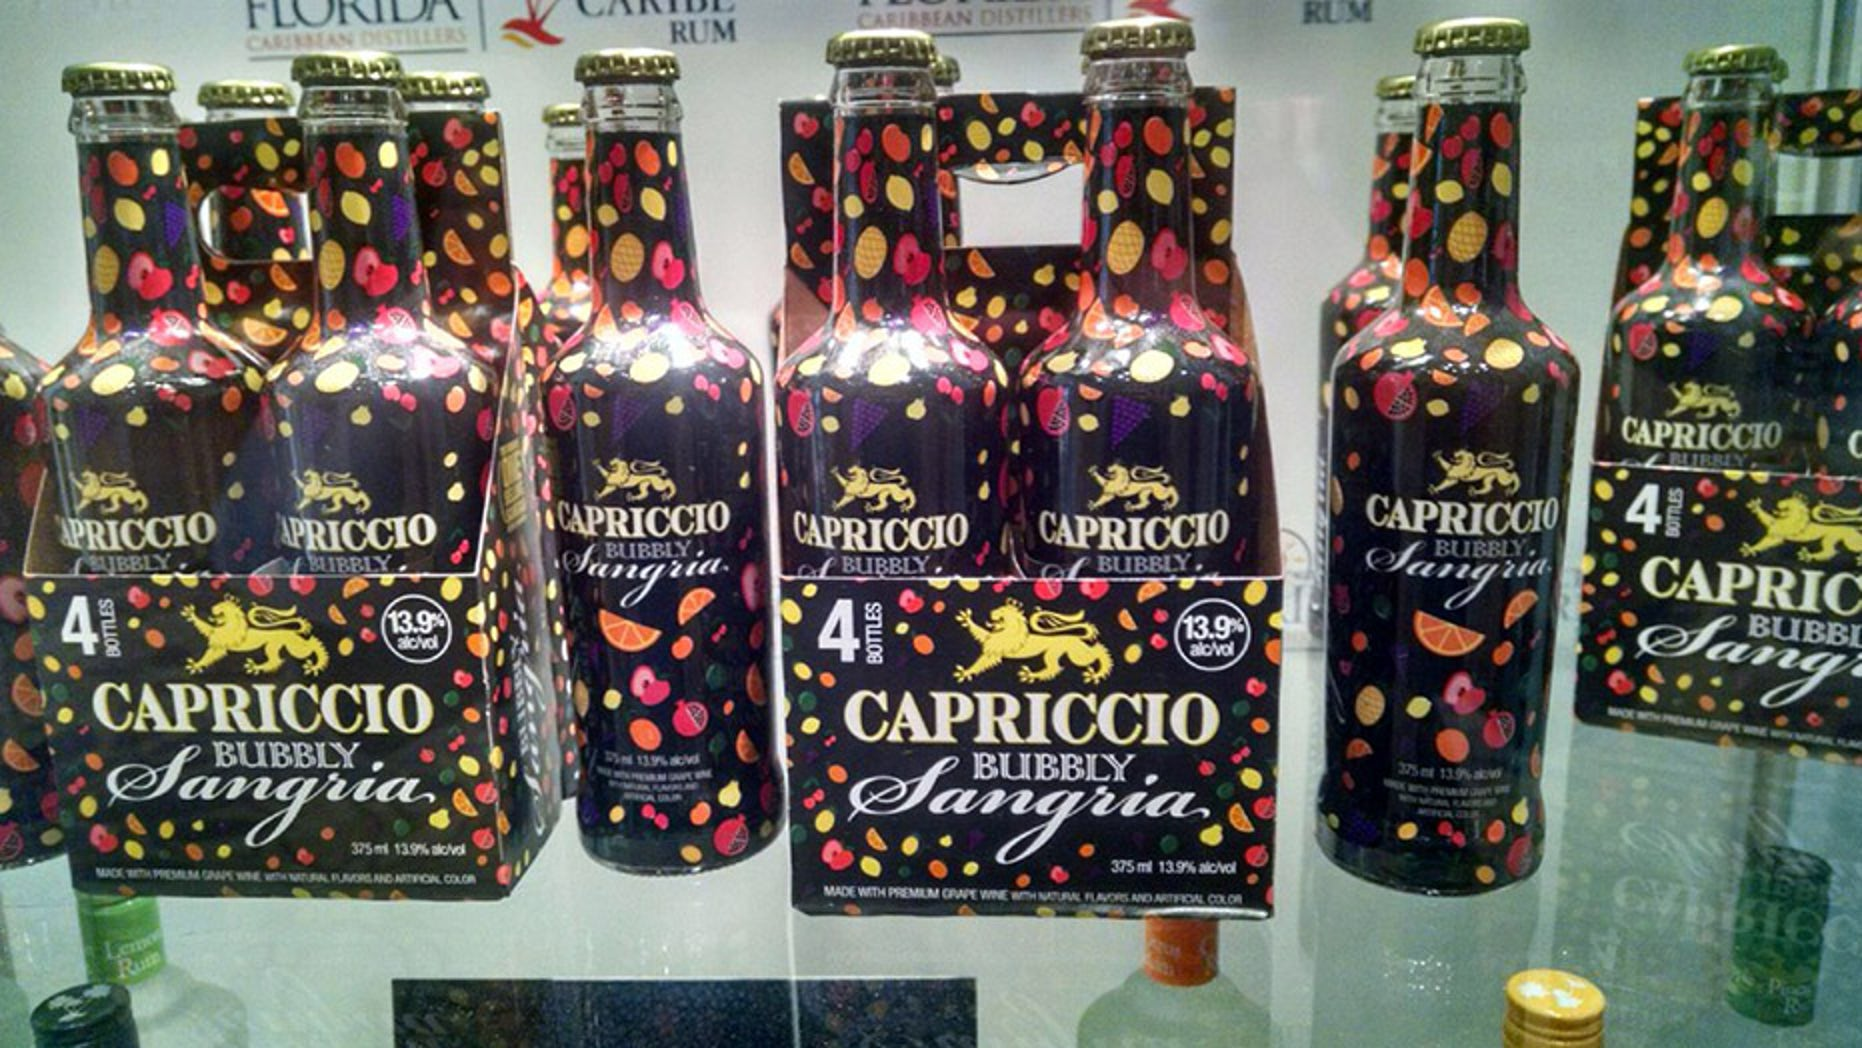 Capriccio Bubbly Sangria is an alcoholic beverage that's 13.9 percent alcohol by volume.